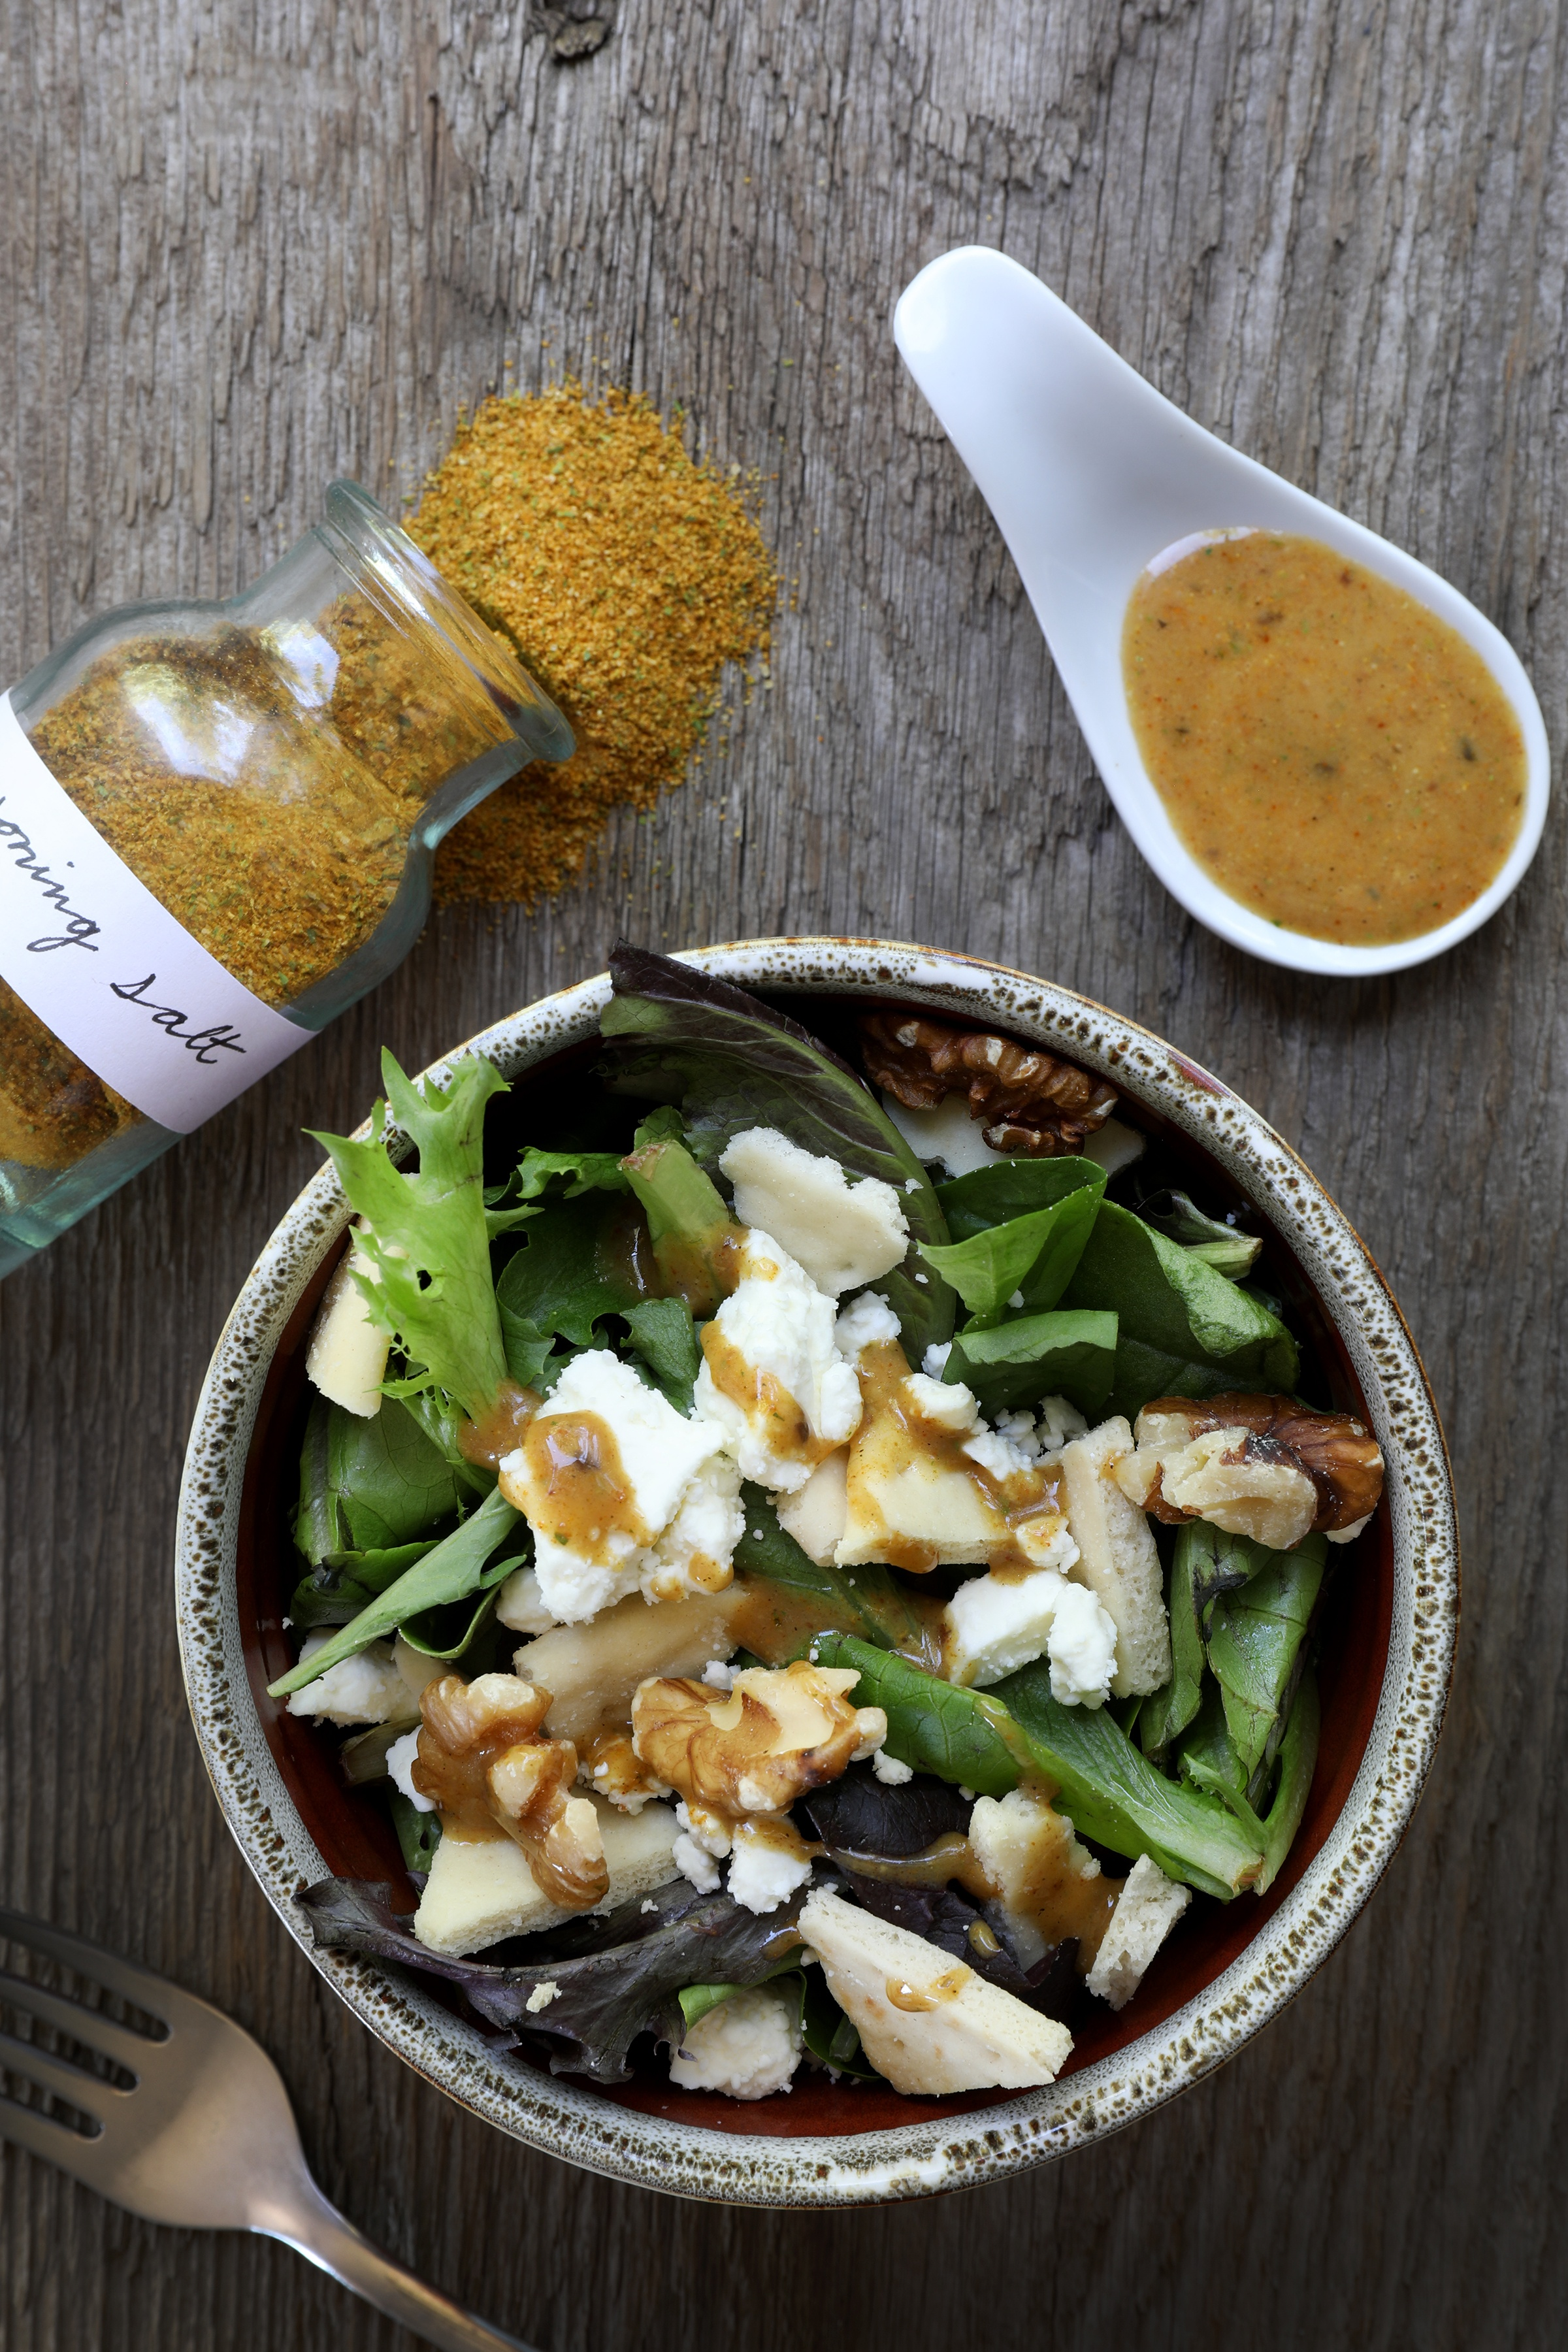 Bowl of salad with bottle of seasoning salt and salad dressing on spoon